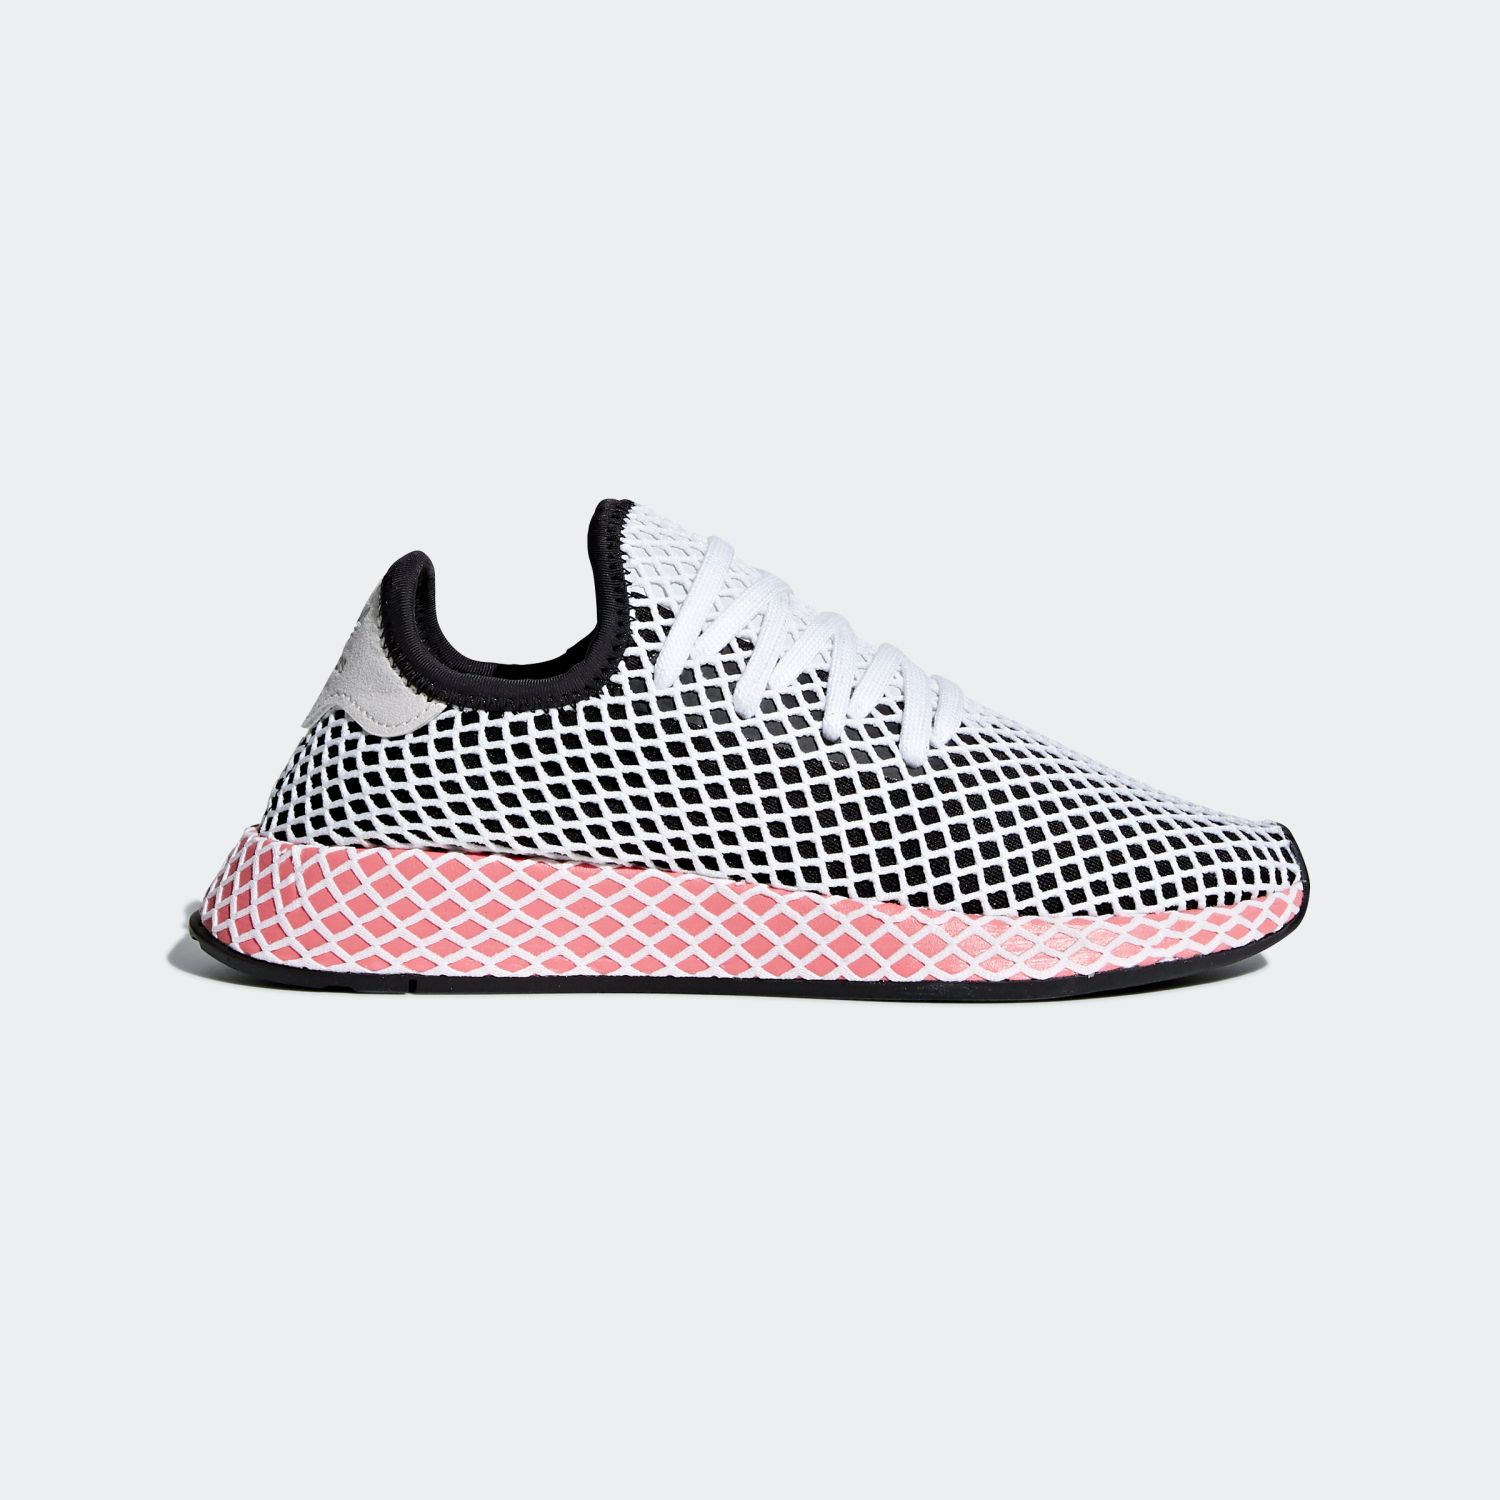 Deerupt Core Black Chalk Pink (ウィメンズ)